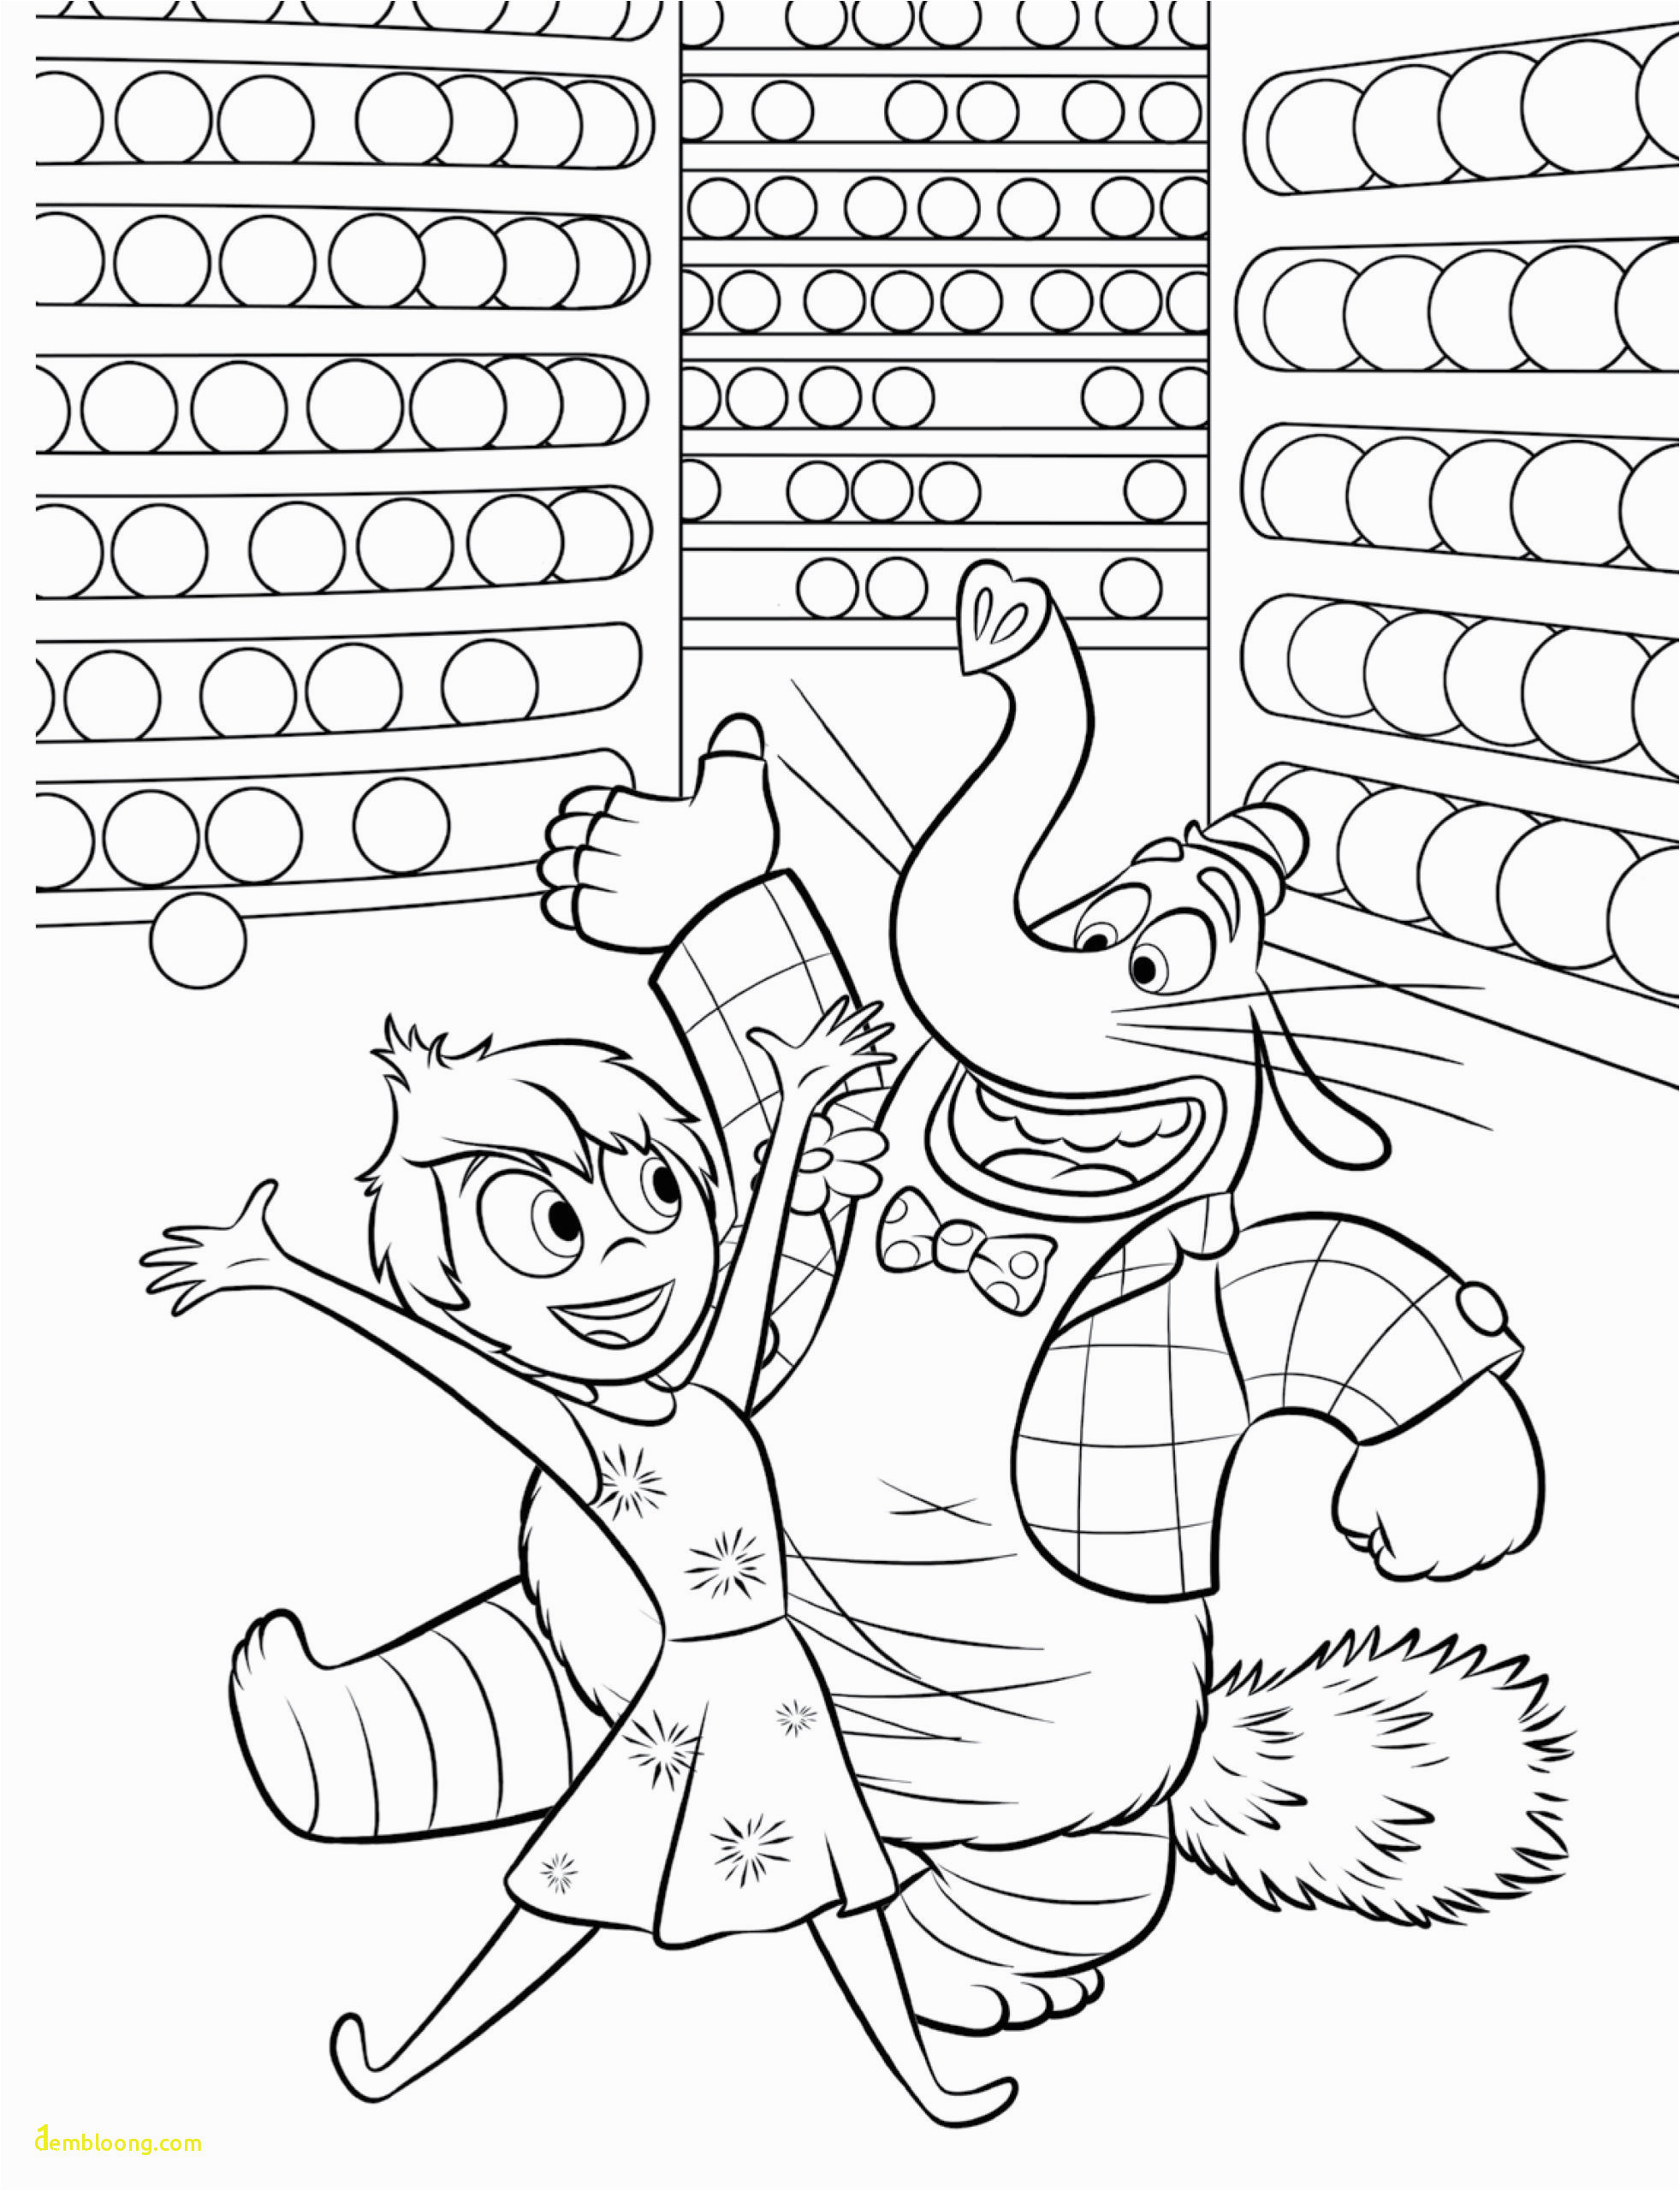 disney xd coloring pages disney xd coloring pages disney coloring pages coloring disney xd coloring pages